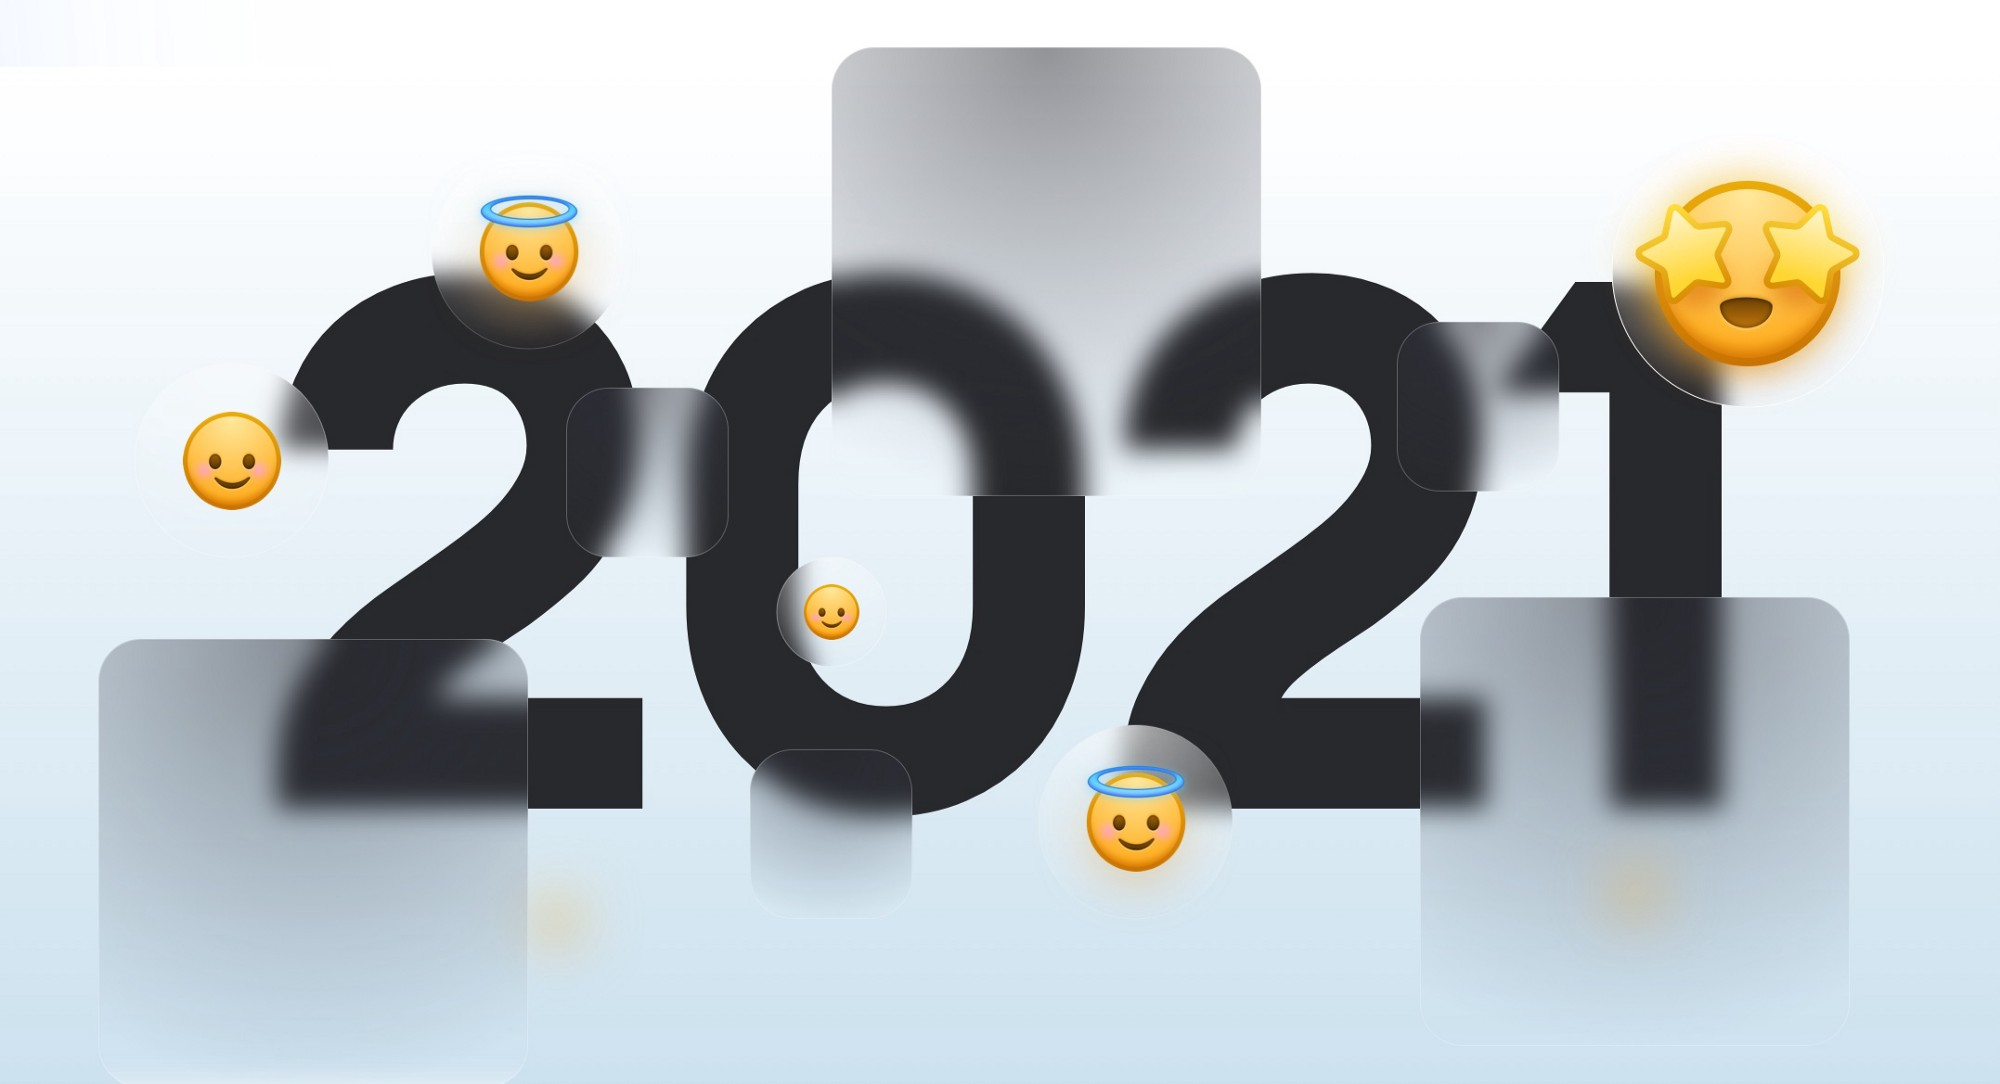 Glassmorphism in 2021 by hype4.academy